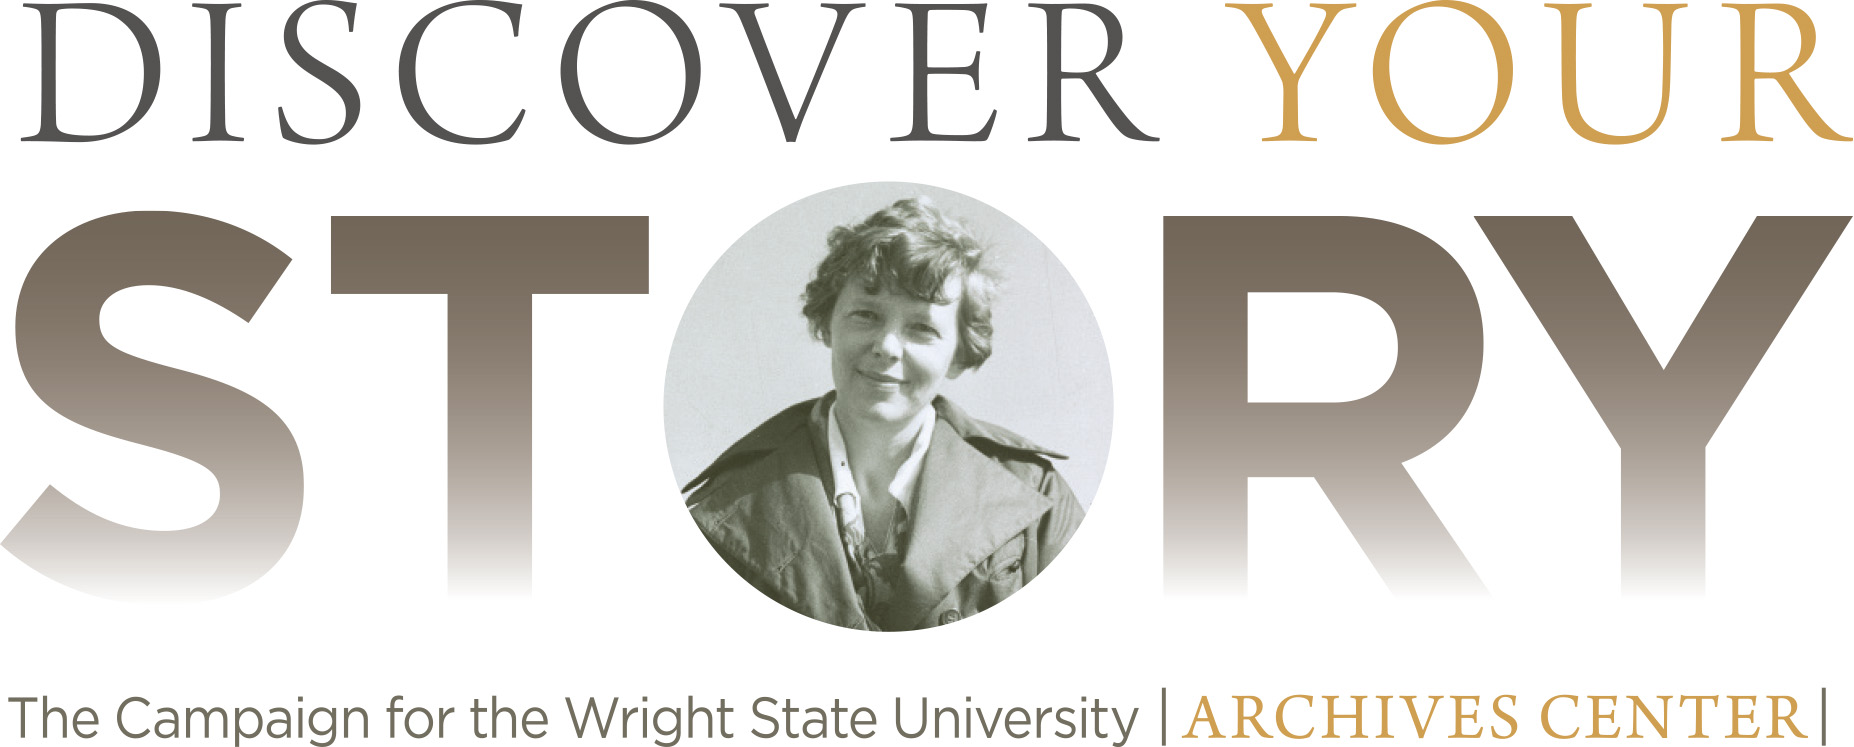 Discover Your Story: The Campaign for Wright State University | Archives Center